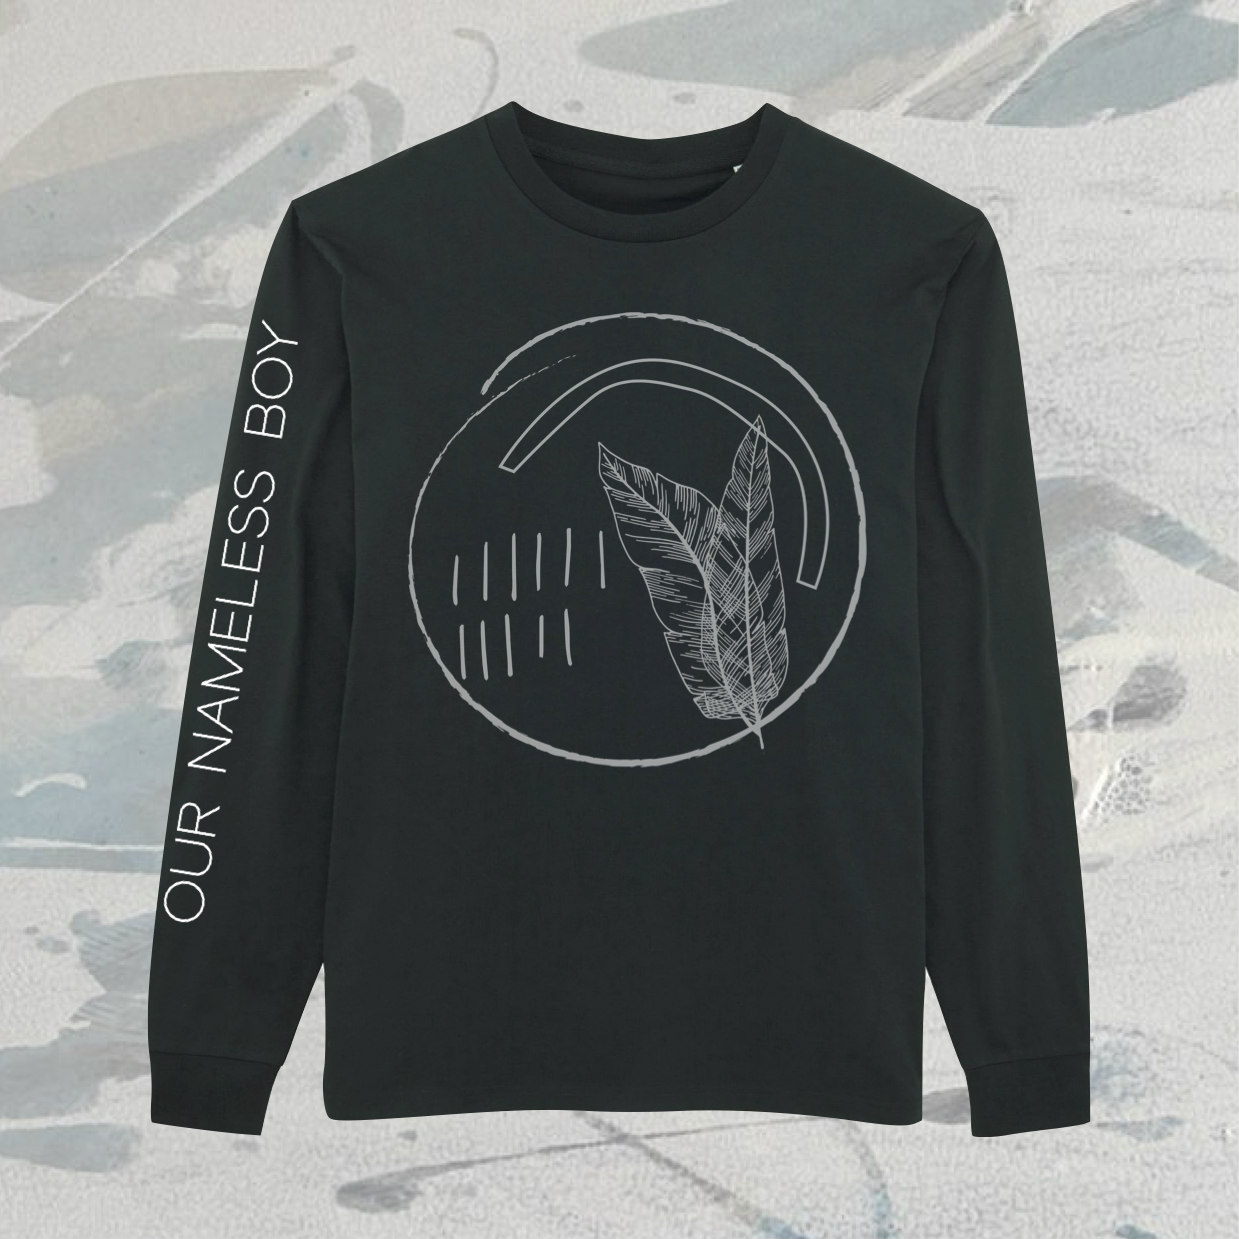 Our Nameless Boy Longsleeve